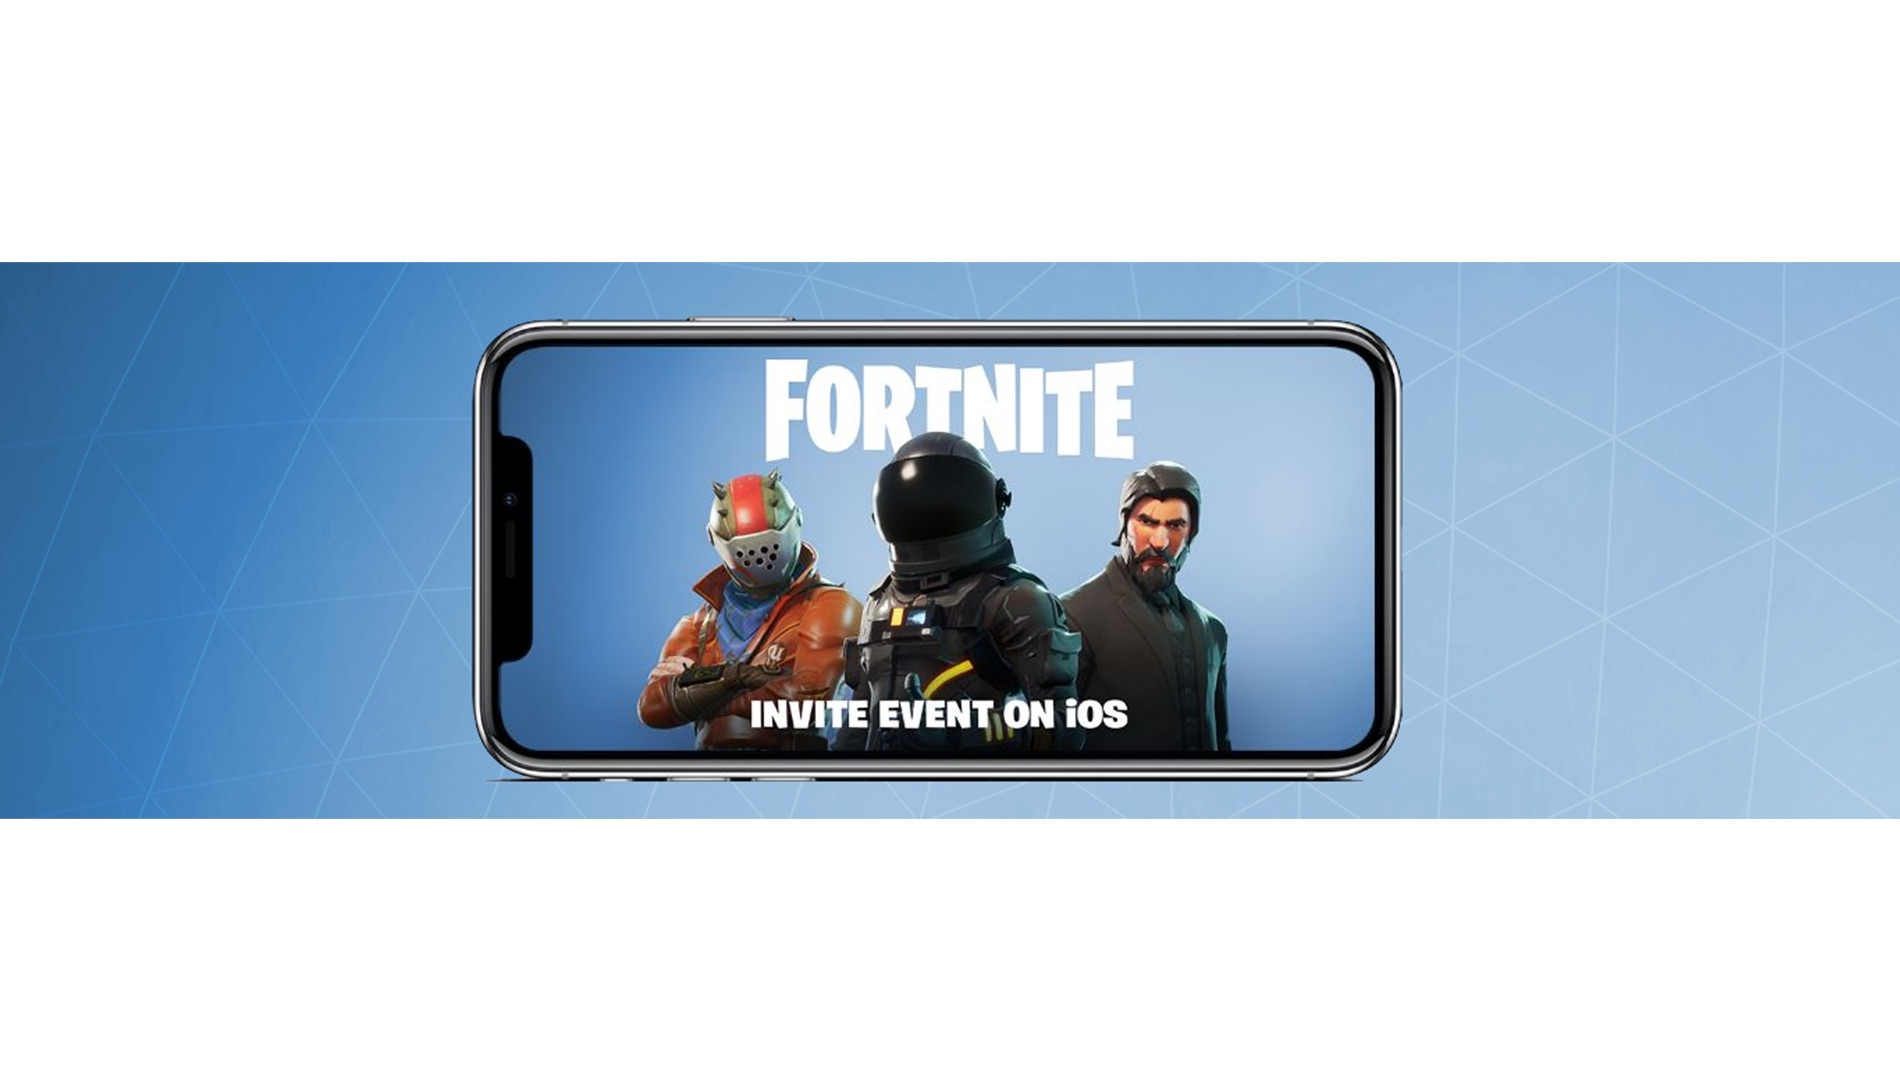 Fortnite Looking To Become The Biggest Game Of All Time With Its Release On The Mobile Platform